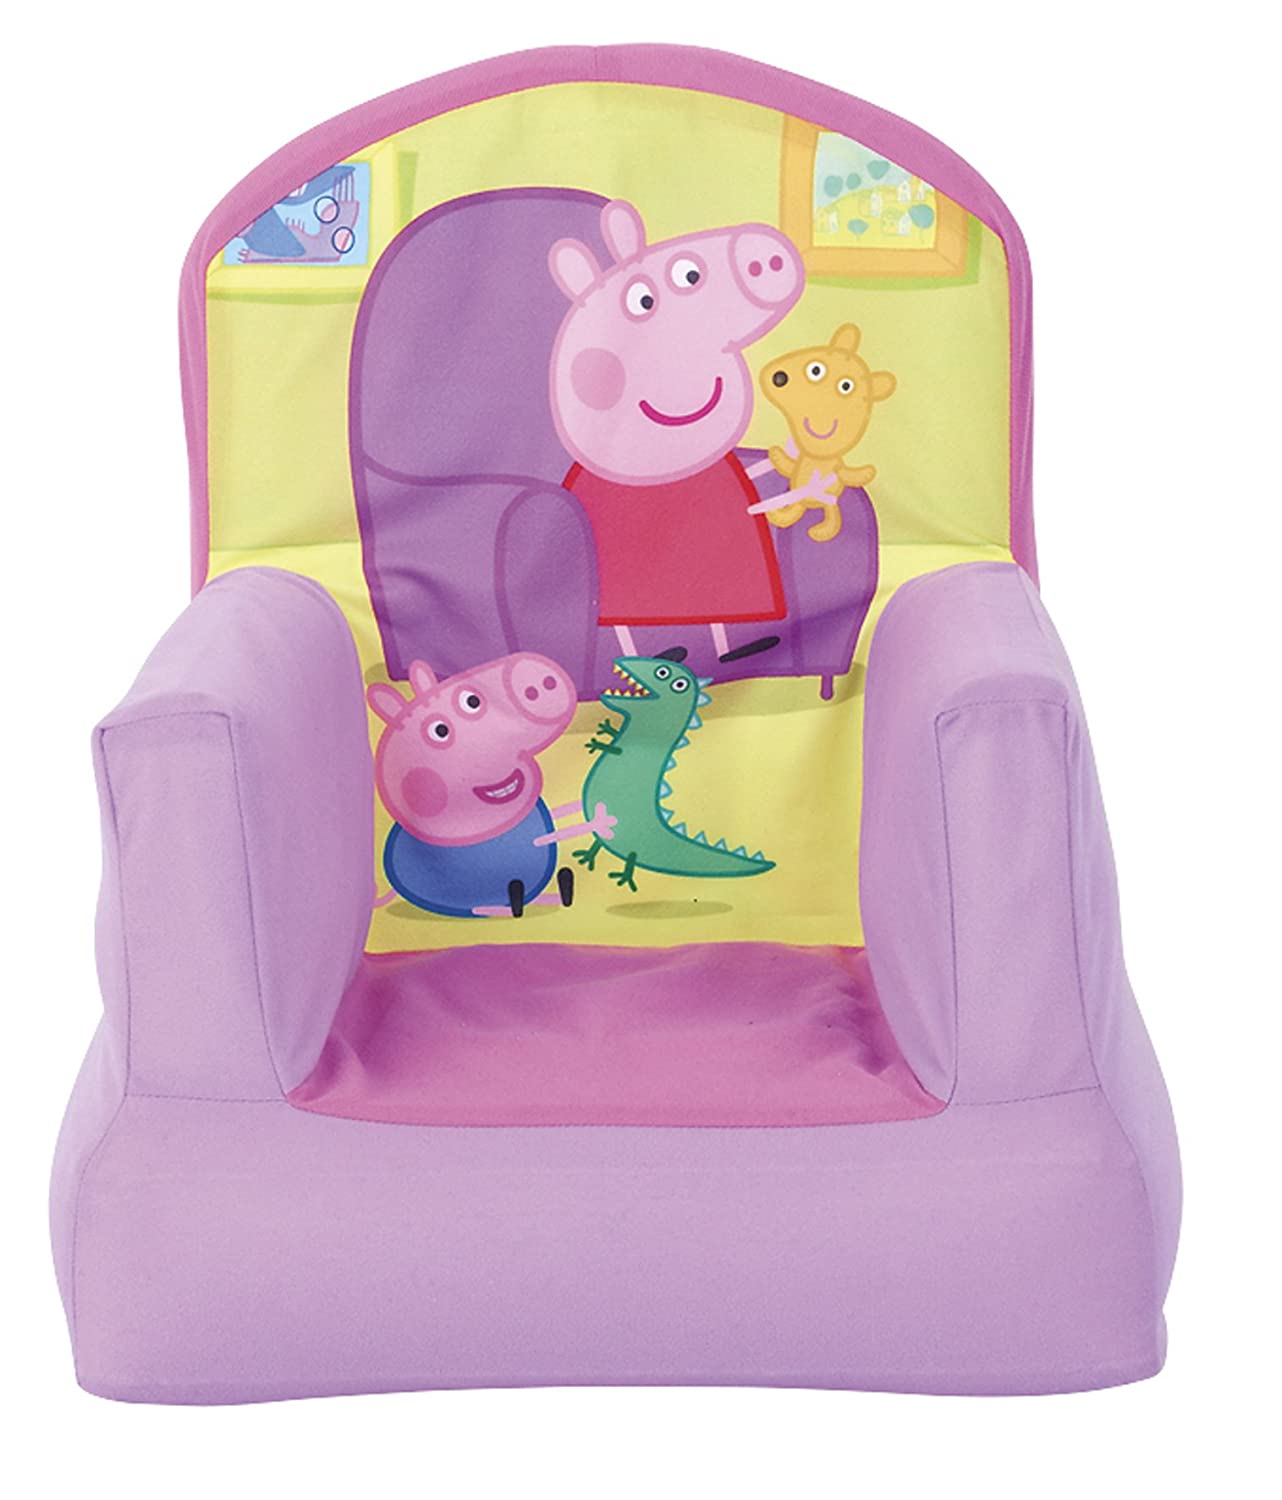 Peppa Pig Inflatable Chair for Kids - Multi-Colured Worlds Apart 280PPA01E bbcc4249971 Cartoons & Comics